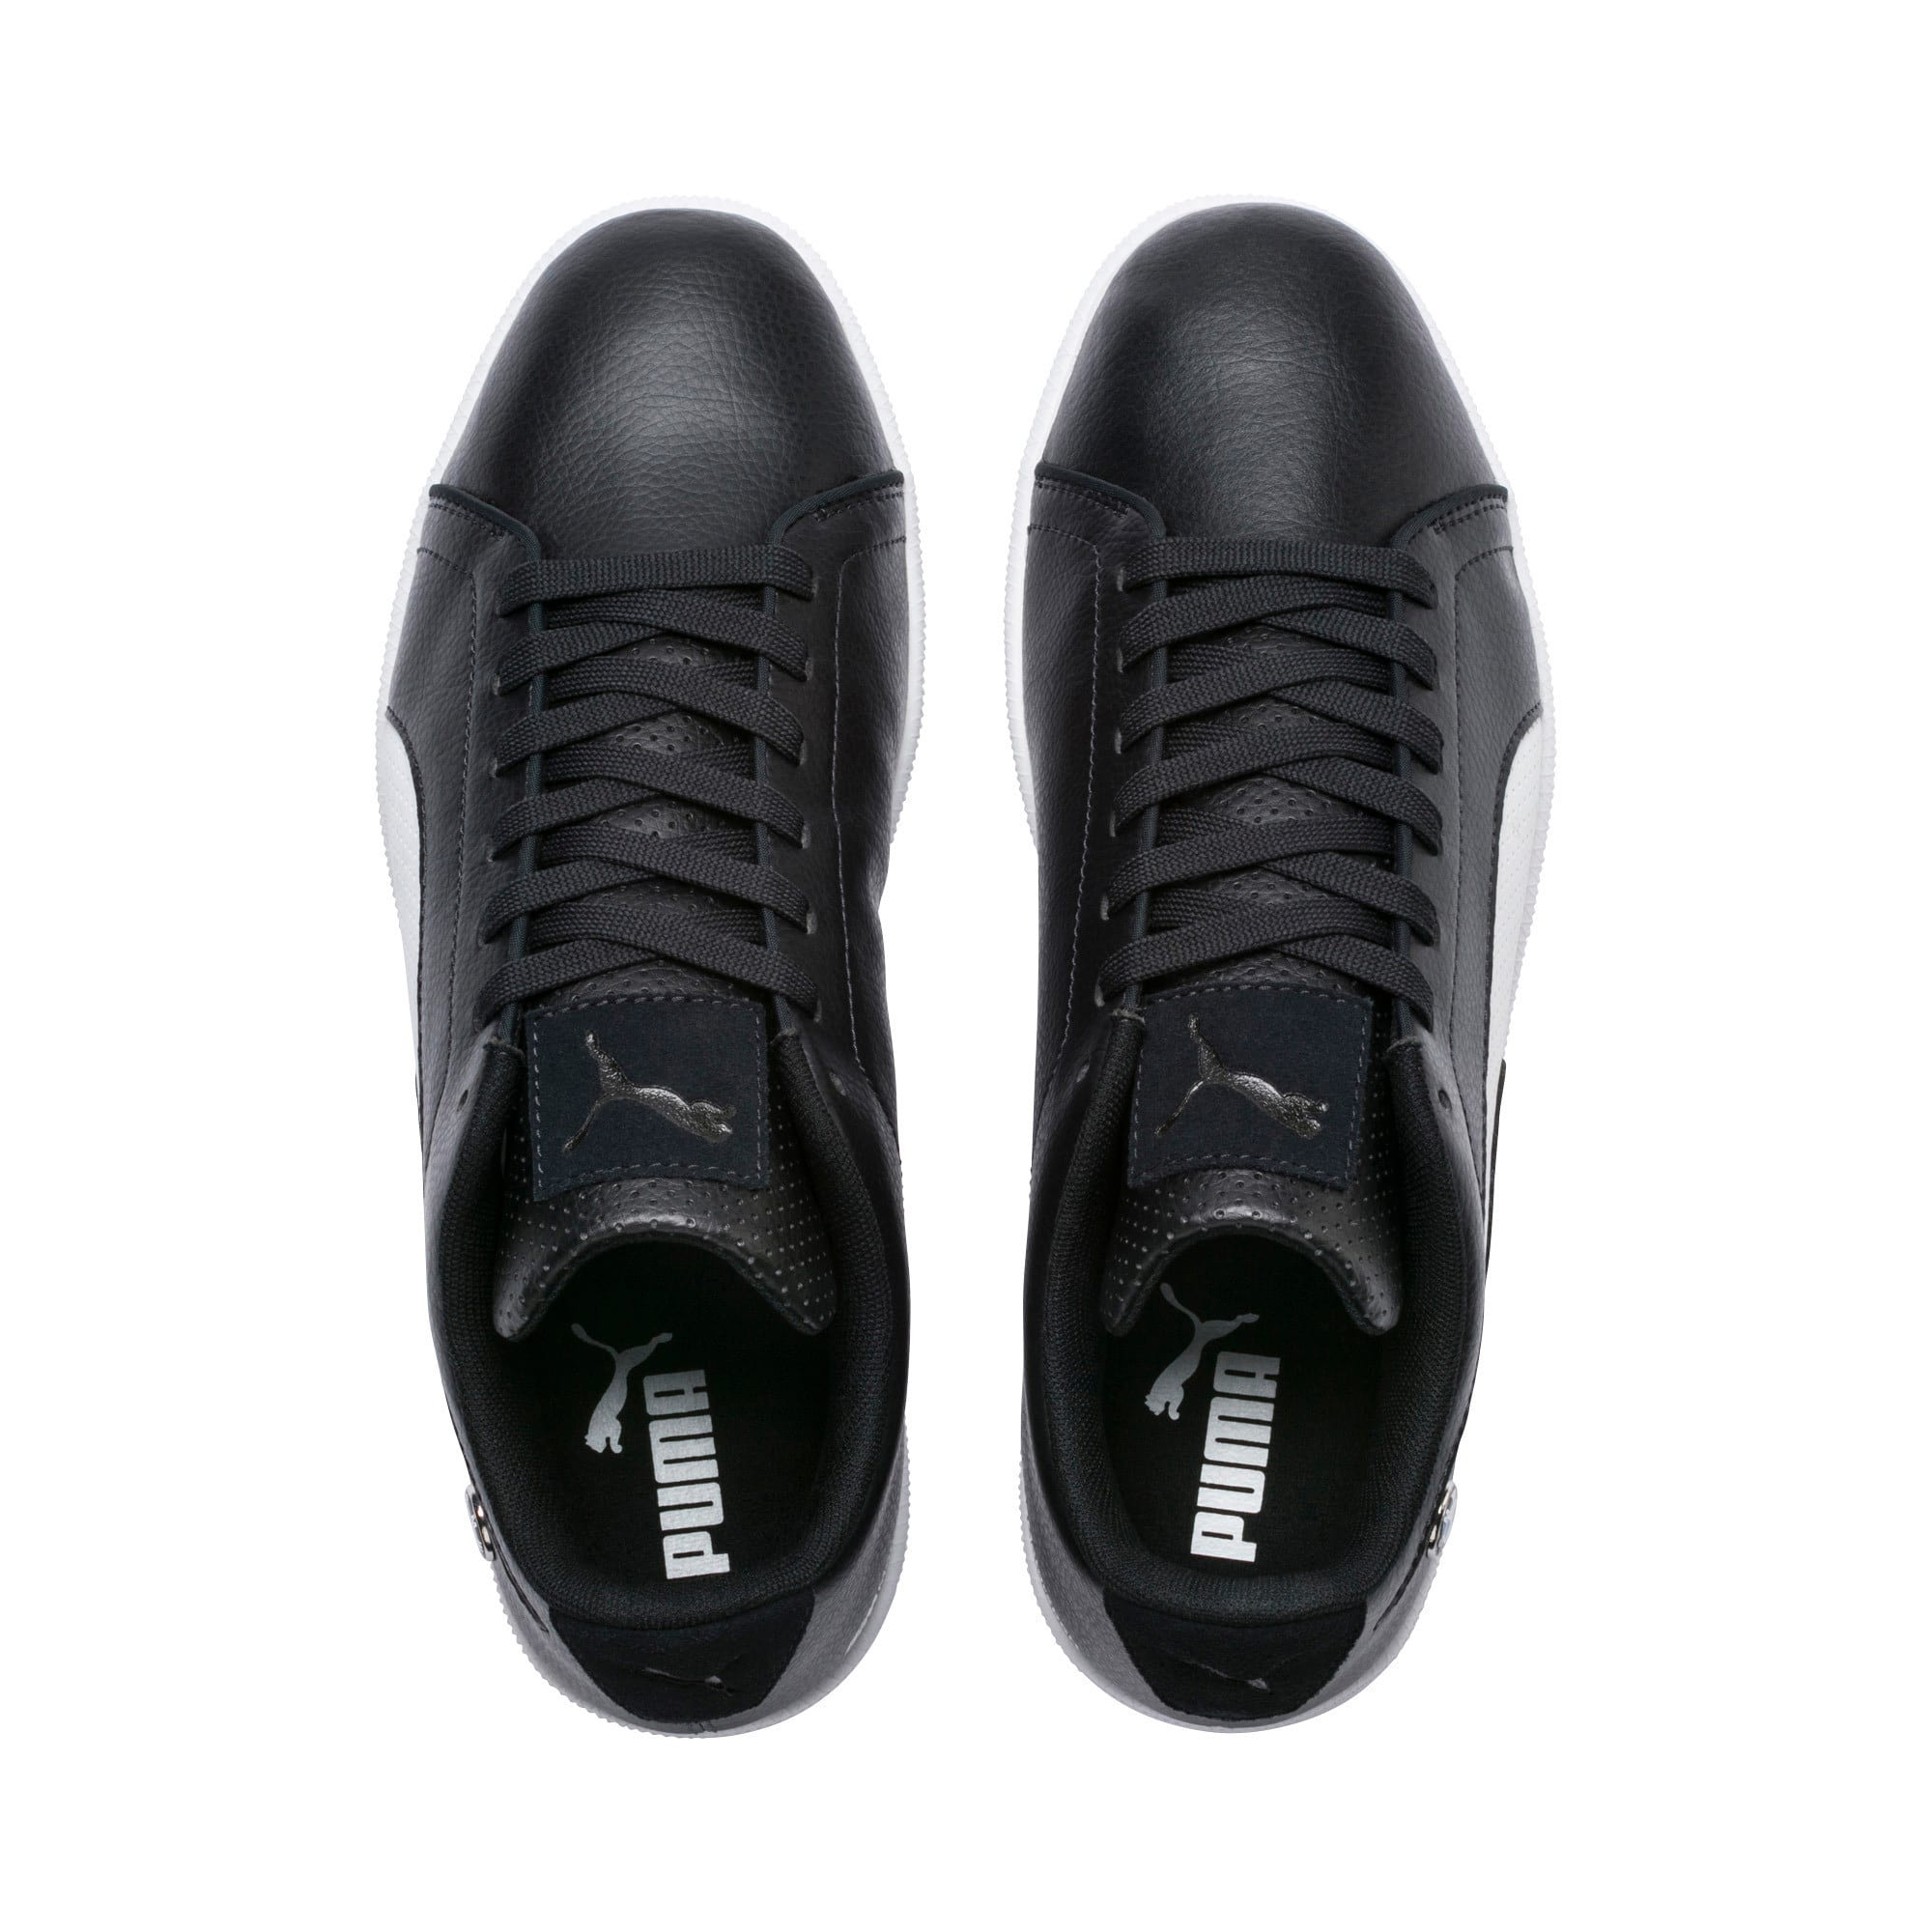 Thumbnail 6 of BMW M Motorsport Court Perf Trainers, Anthracite-Puma White, medium-IND